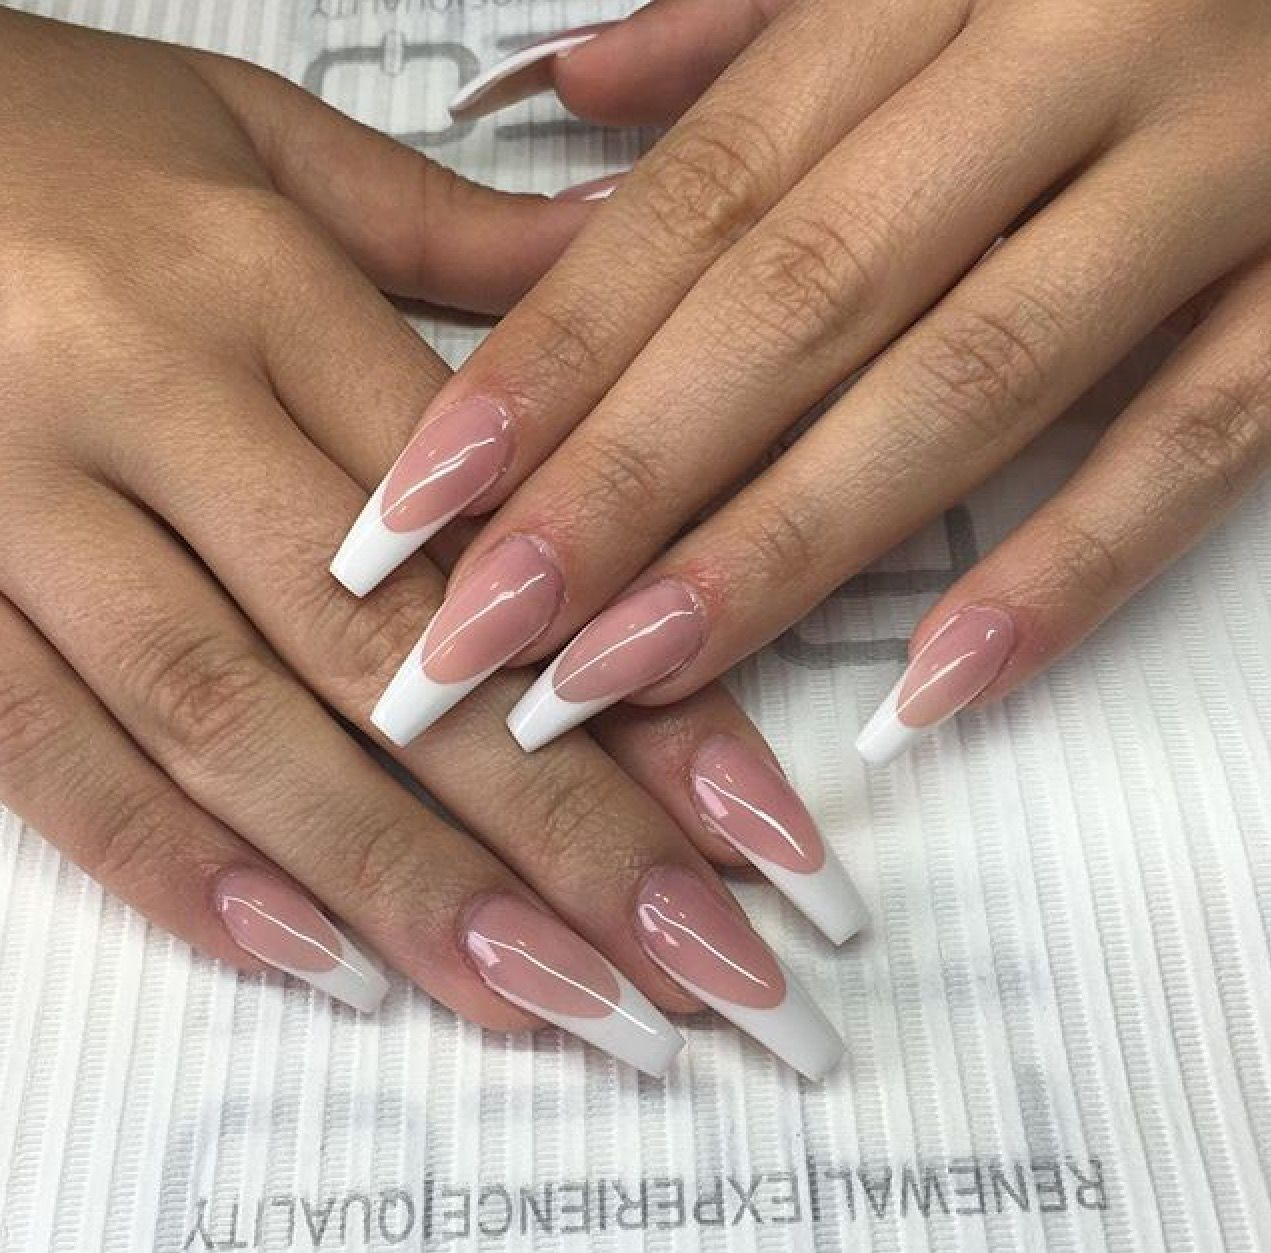 French Manicure French Tip Acrylic Nails White Tip Acrylic Nails White Tip Nails